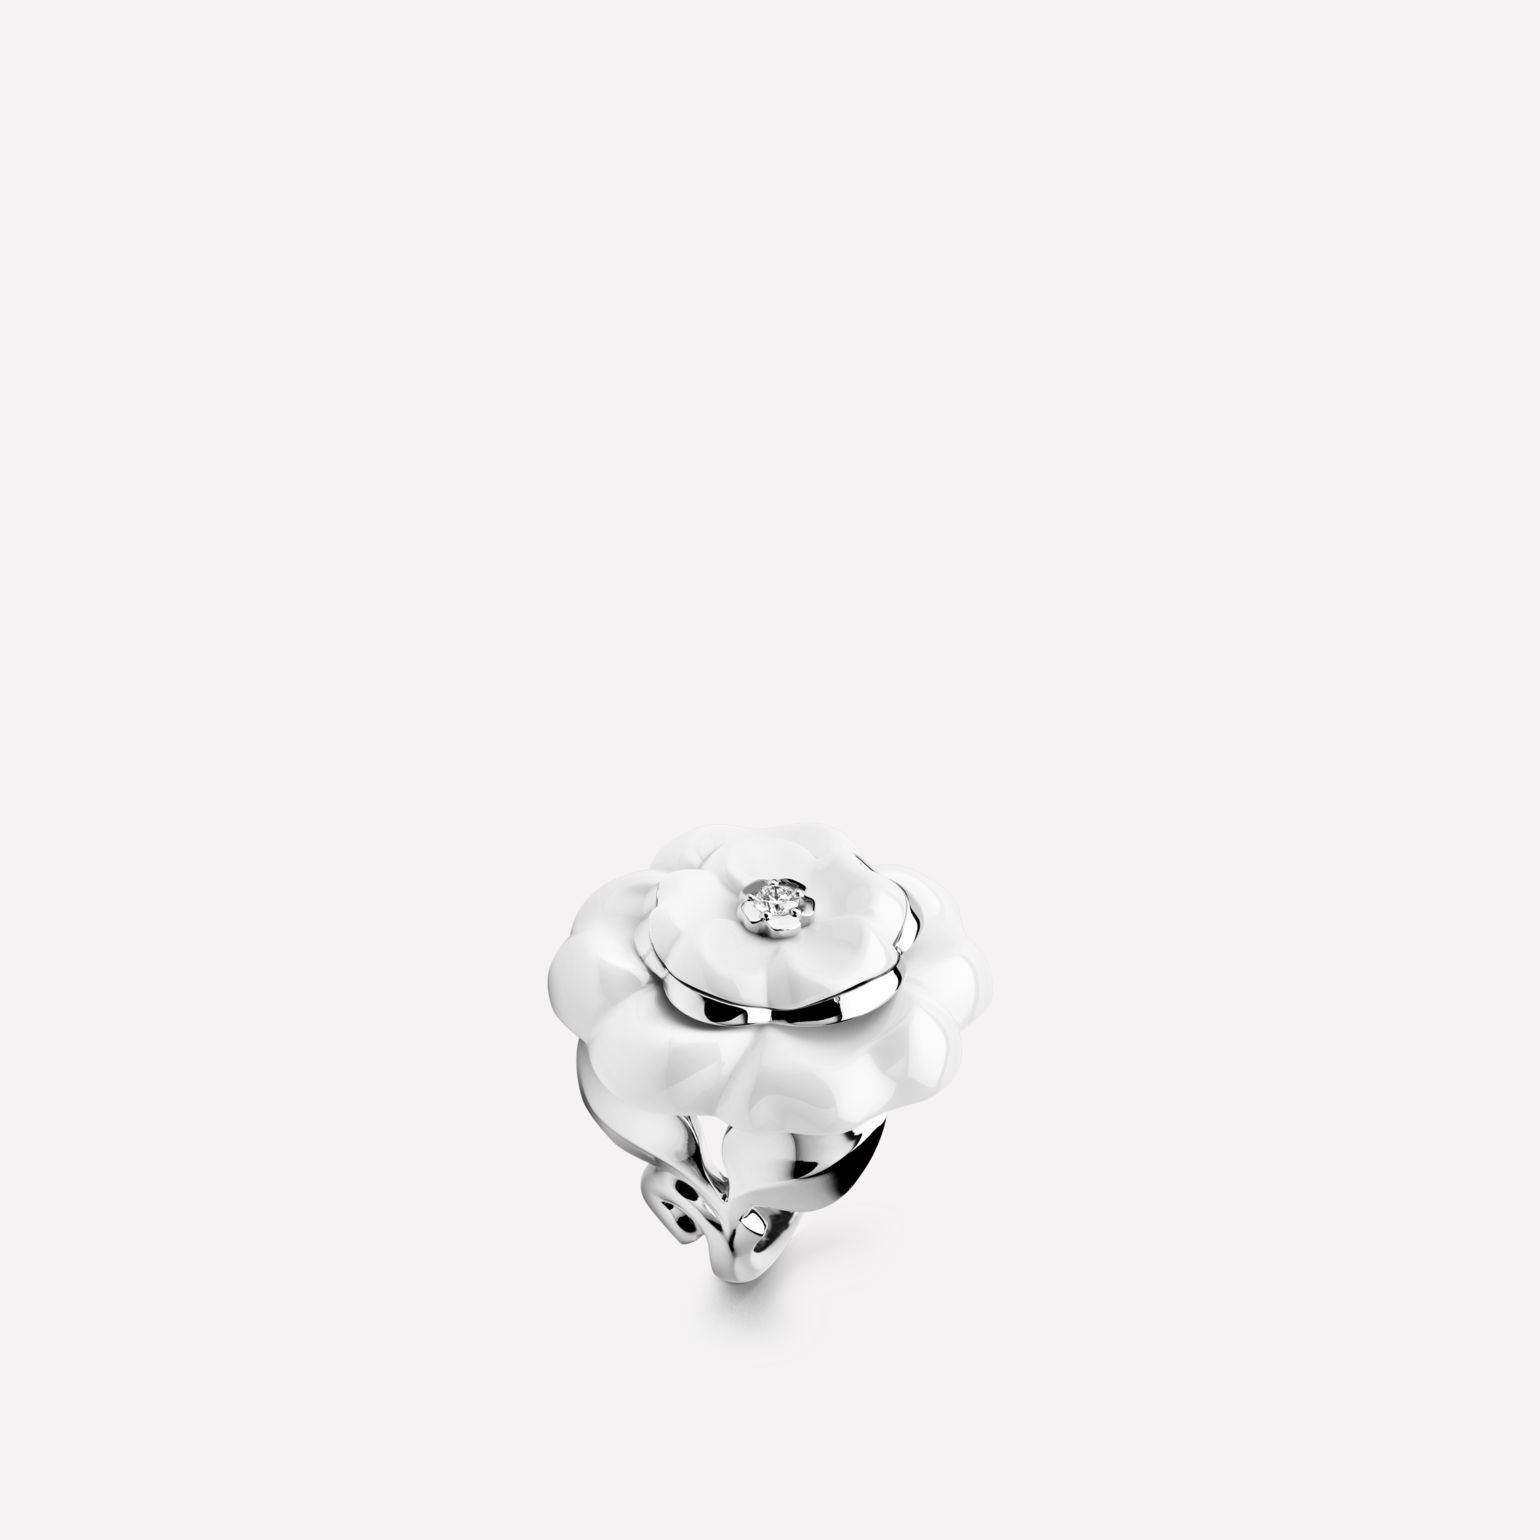 Camélia Ring Camélia Galbé ring in white ceramic, 18K white gold and central diamond